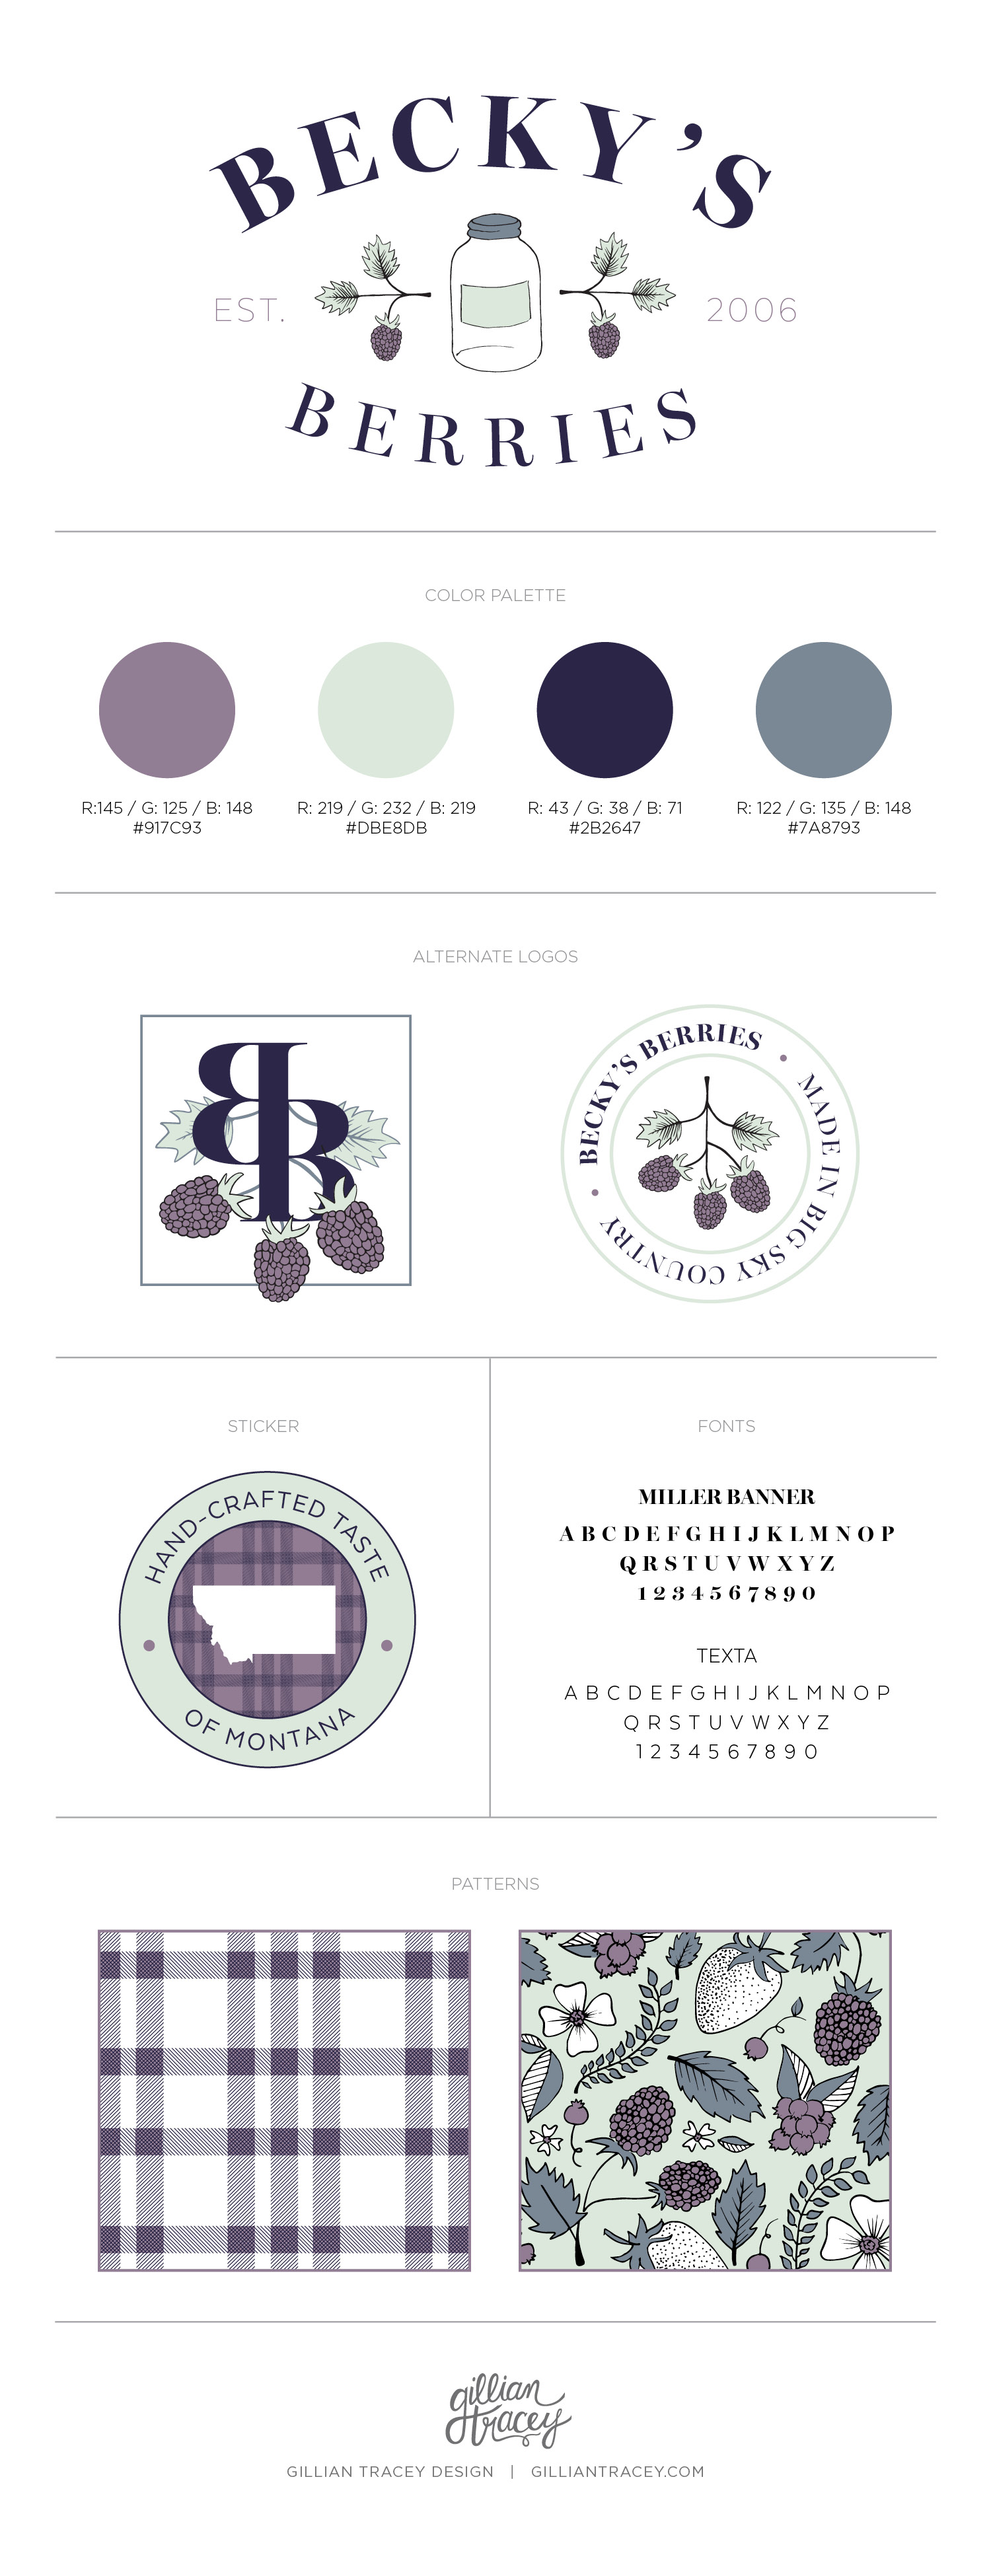 Becky's Berries Brand Identity Concept by Gillian Tracey Design